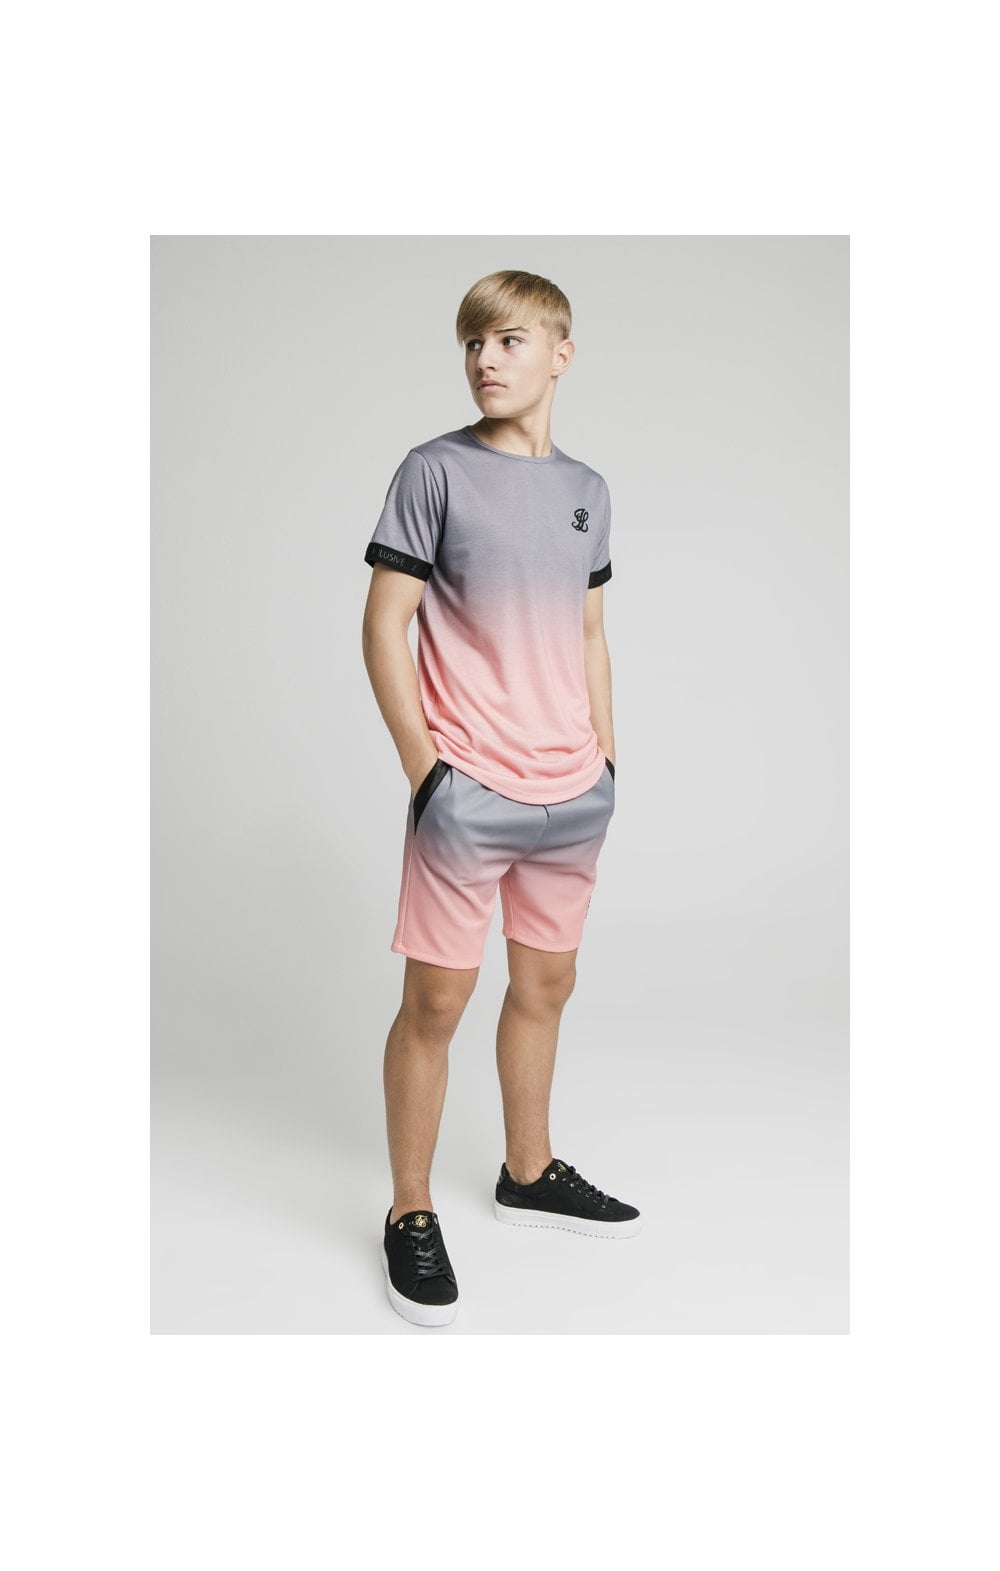 Illusive London Poly Fade Shorts - Grey & Peach (5)